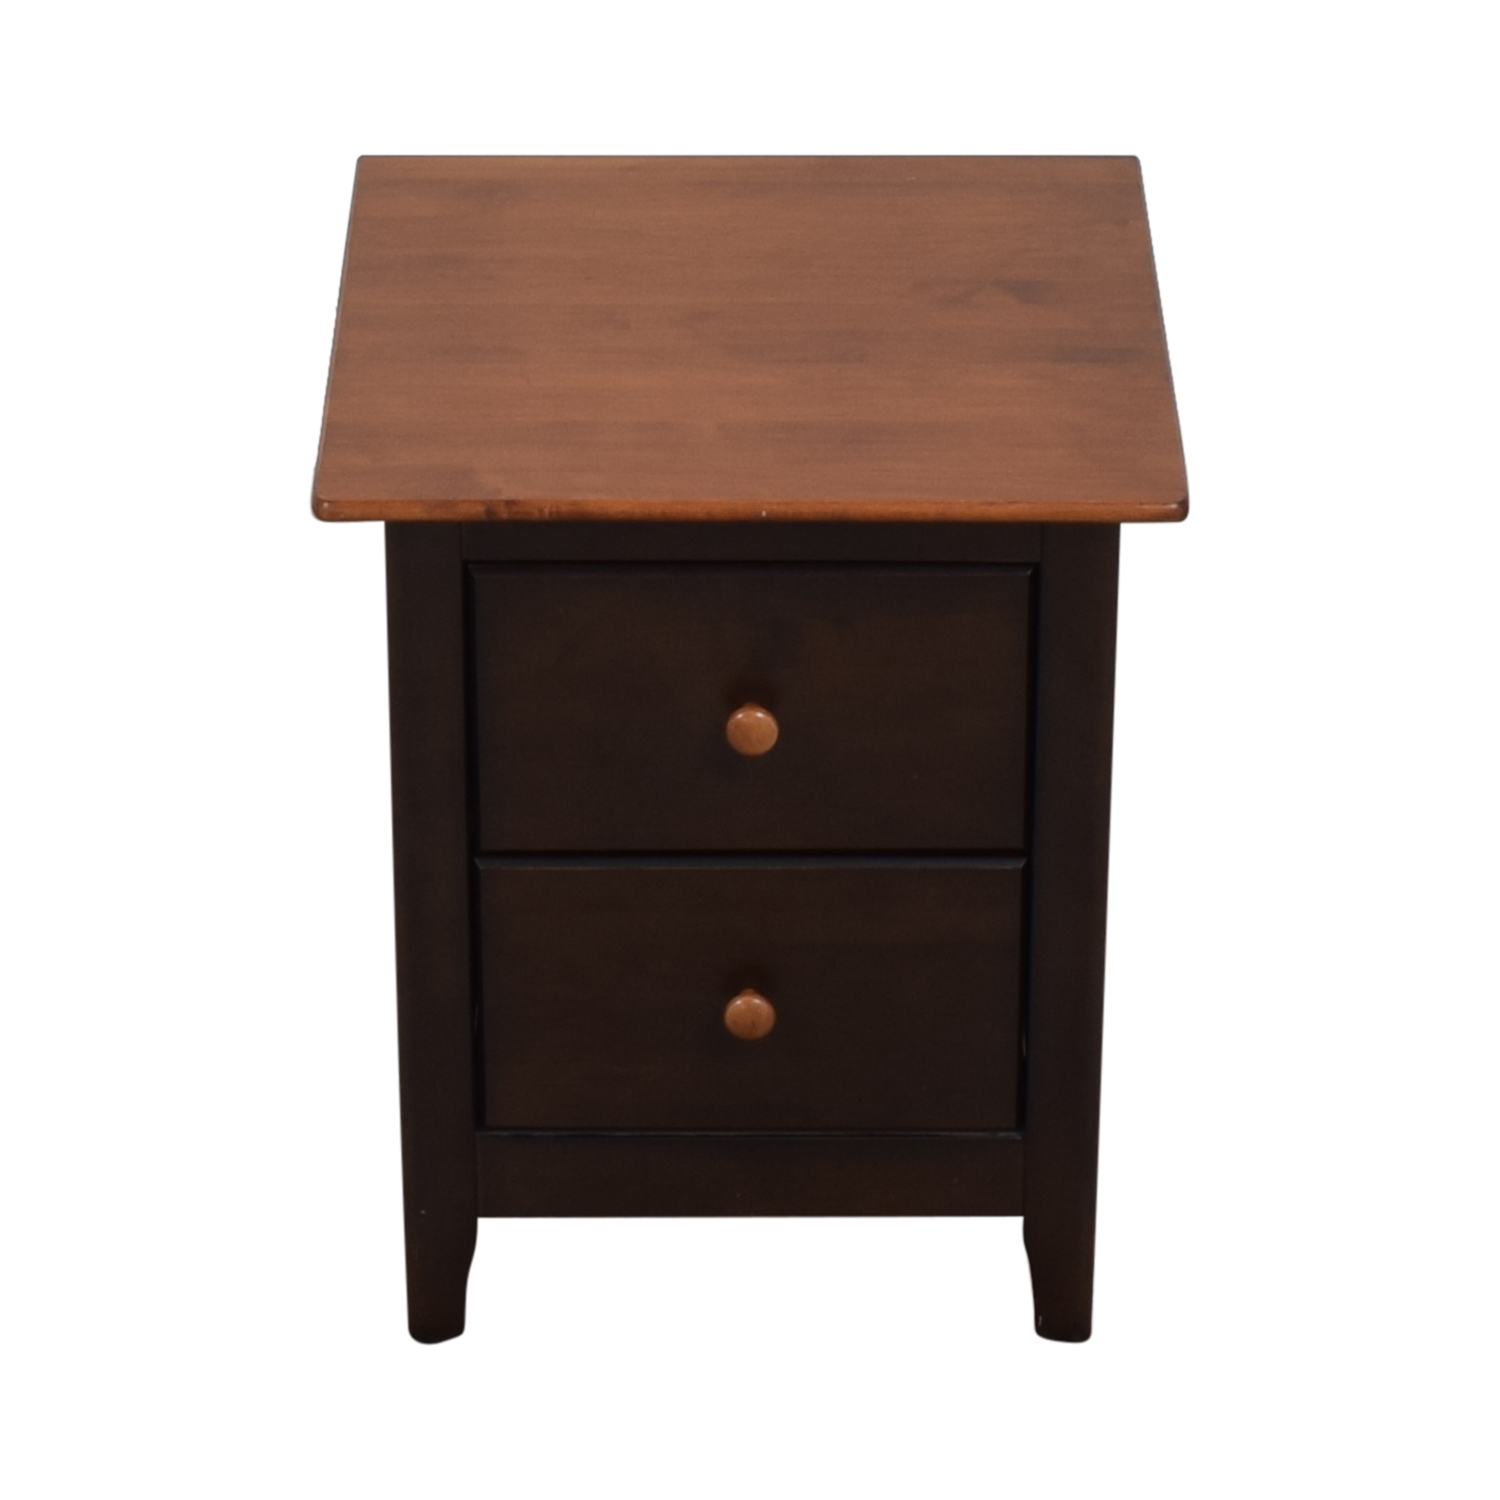 Nadeau Nadeau Two Tone End Table